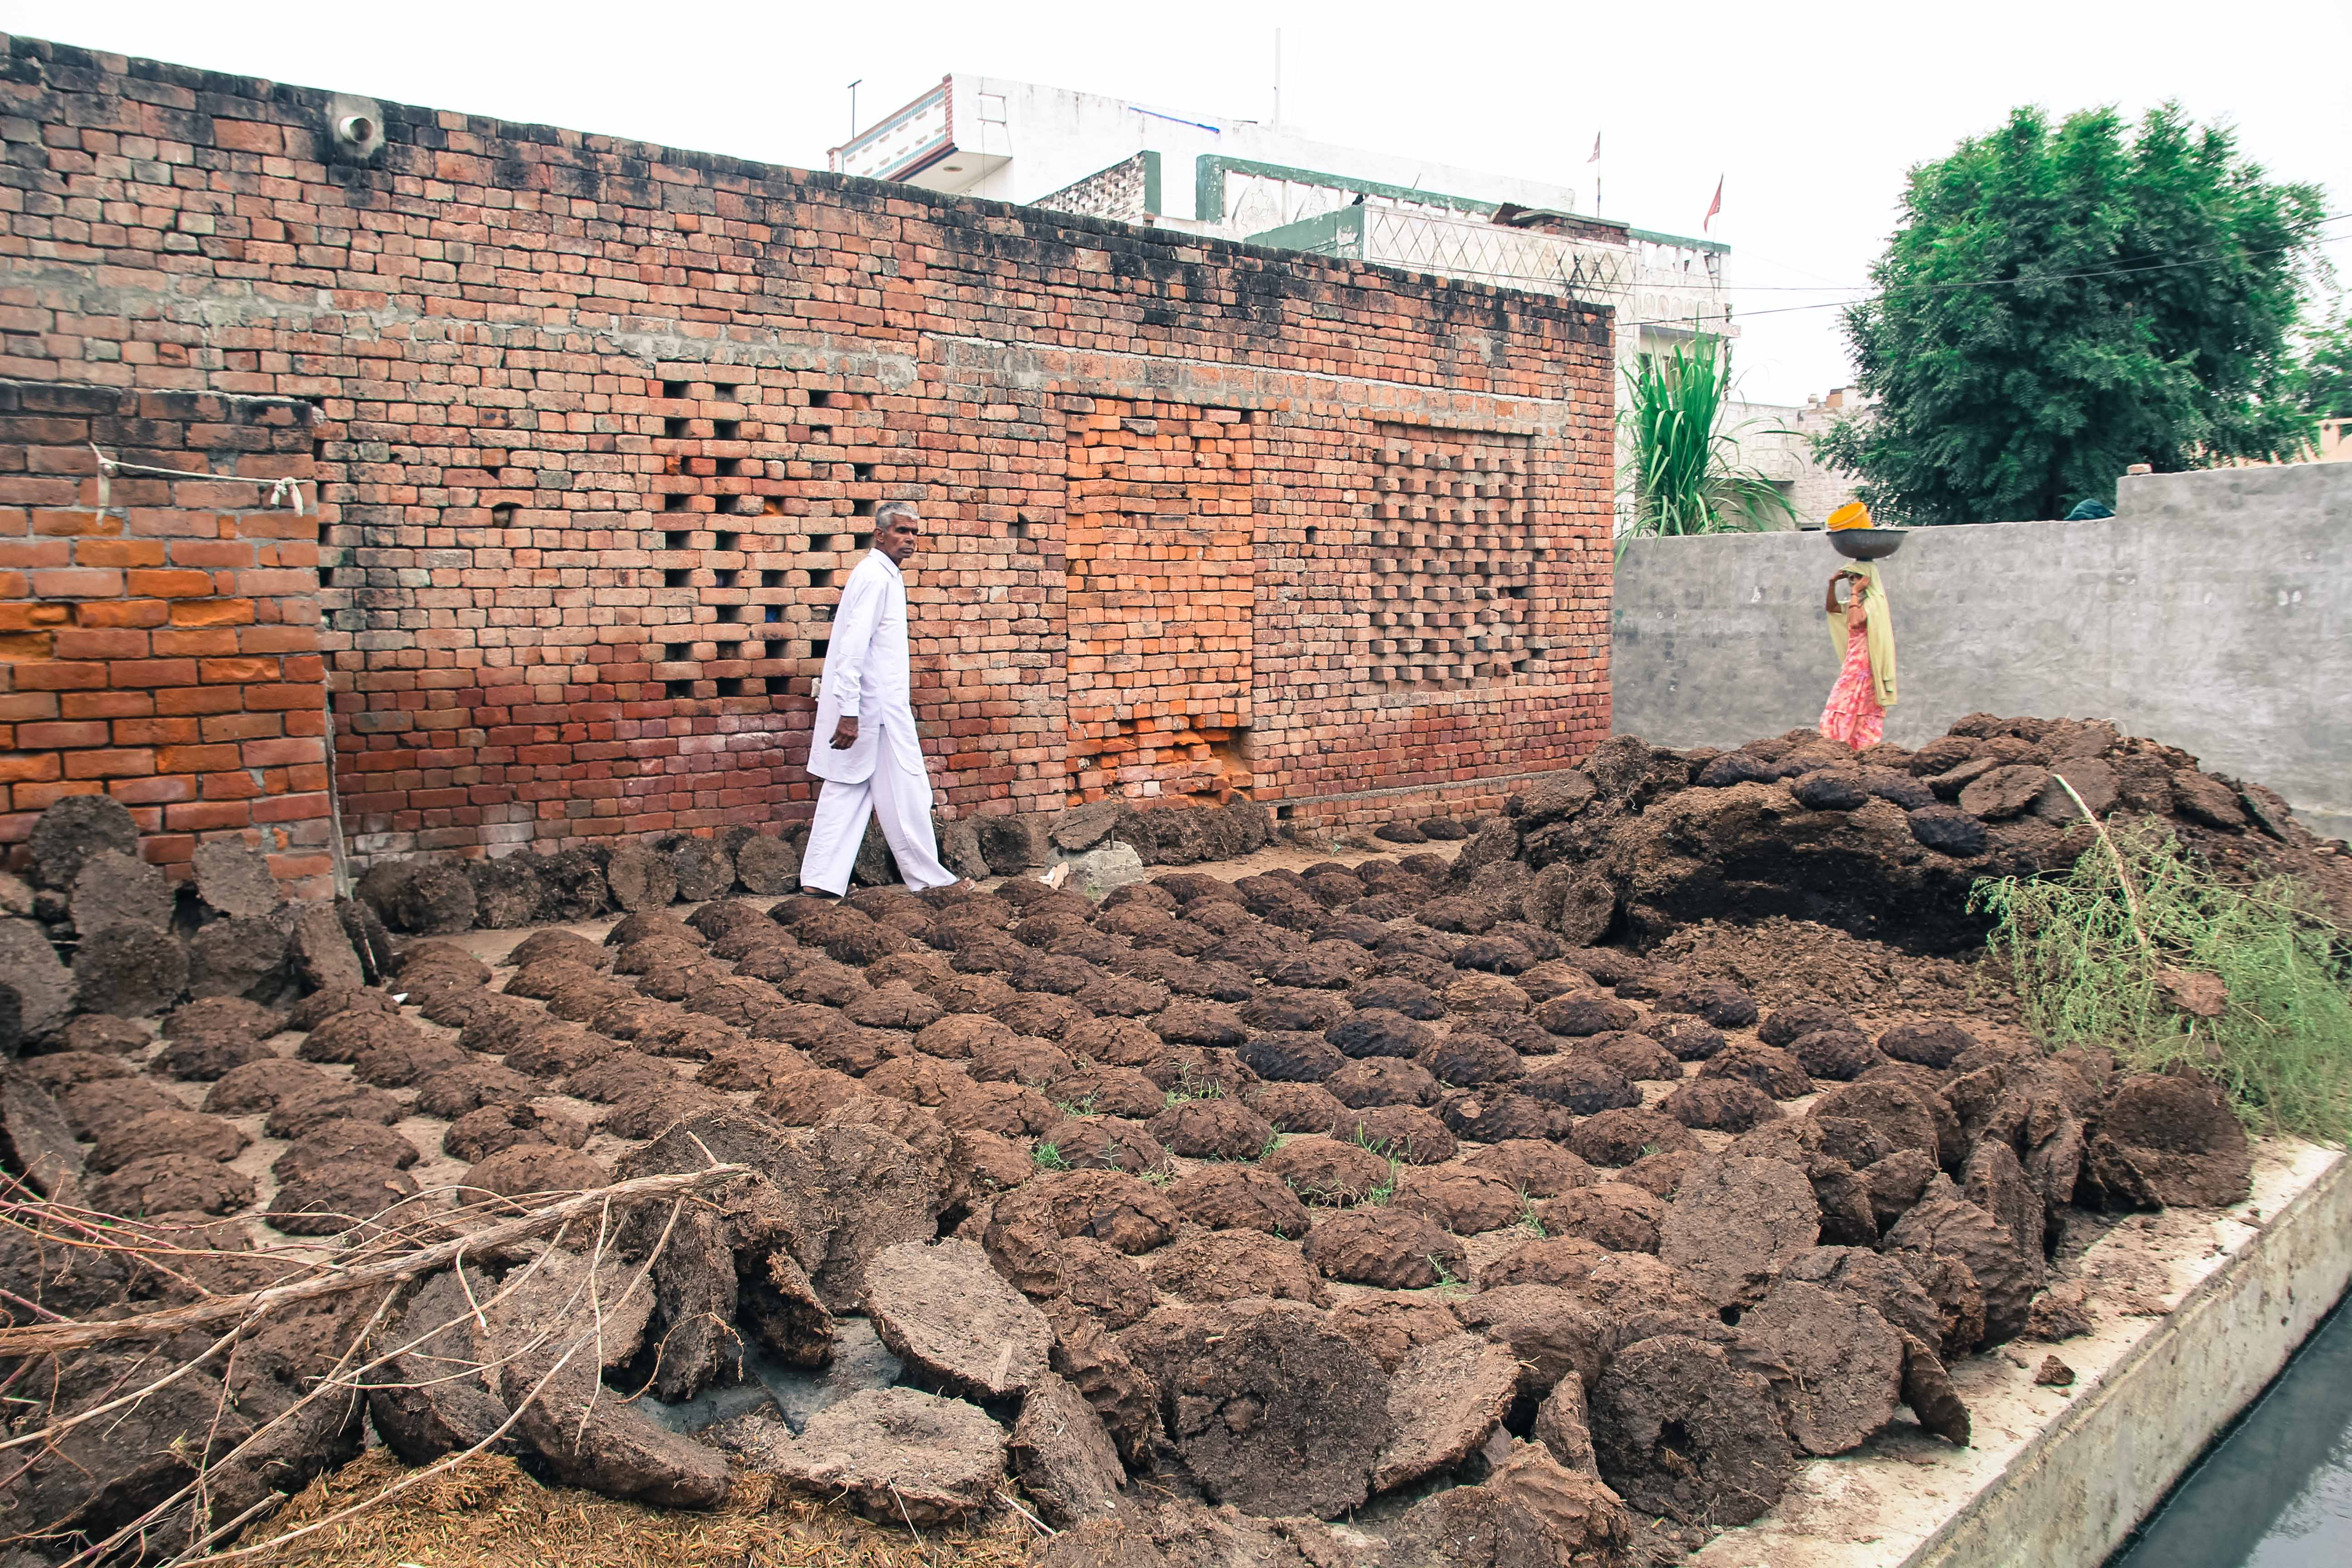 Buffalo dung patties dry to be used for fuel in Hathlana, Haryana